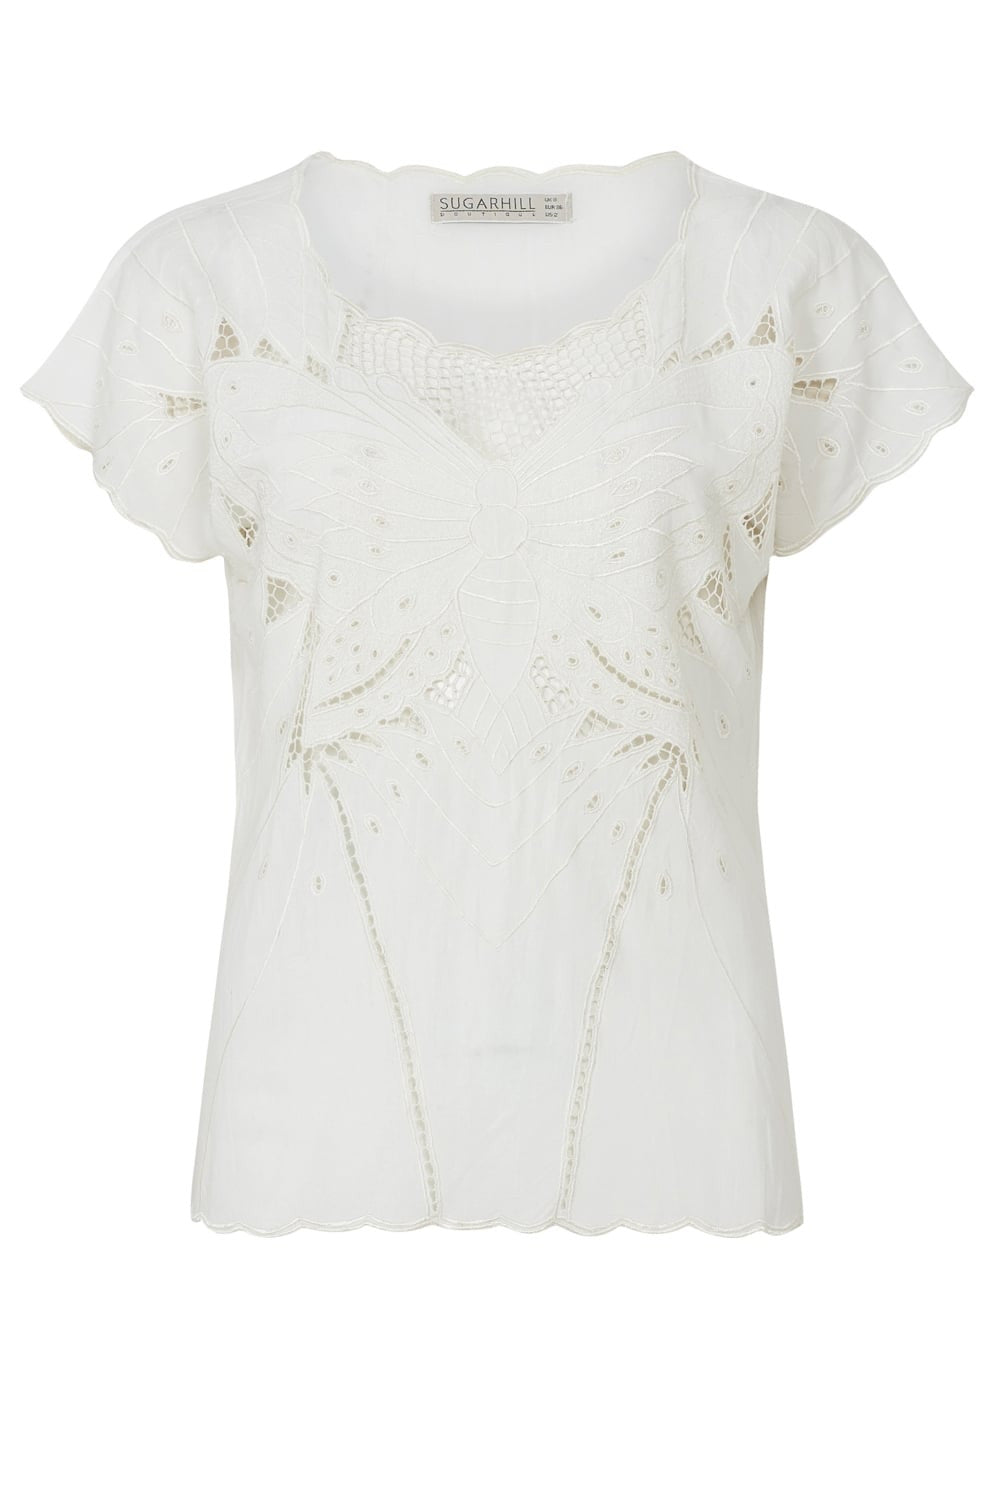 Cream Butterfly Cutwork Embroidered Top